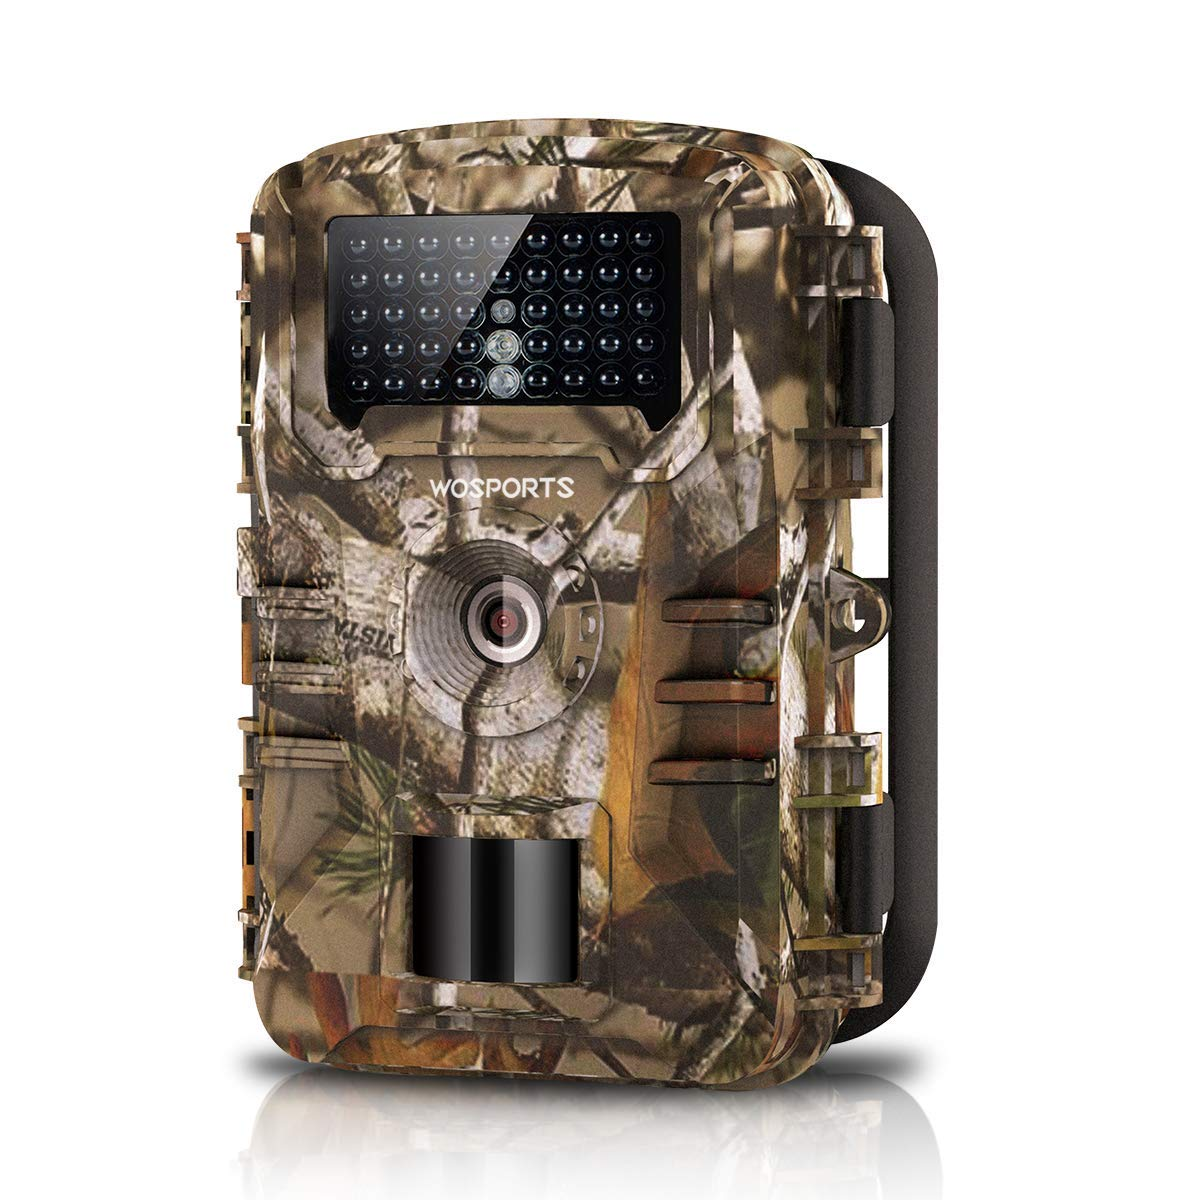 WOSPORTS Trail Camera Full HD 1080P Hunting Game Camera, 940nm Motion Activated Night Vision 65ft, Waterproof Scouting Cam 2.4'' Wireless Video Camera for Wildlife Monitoring/Home Security,88E